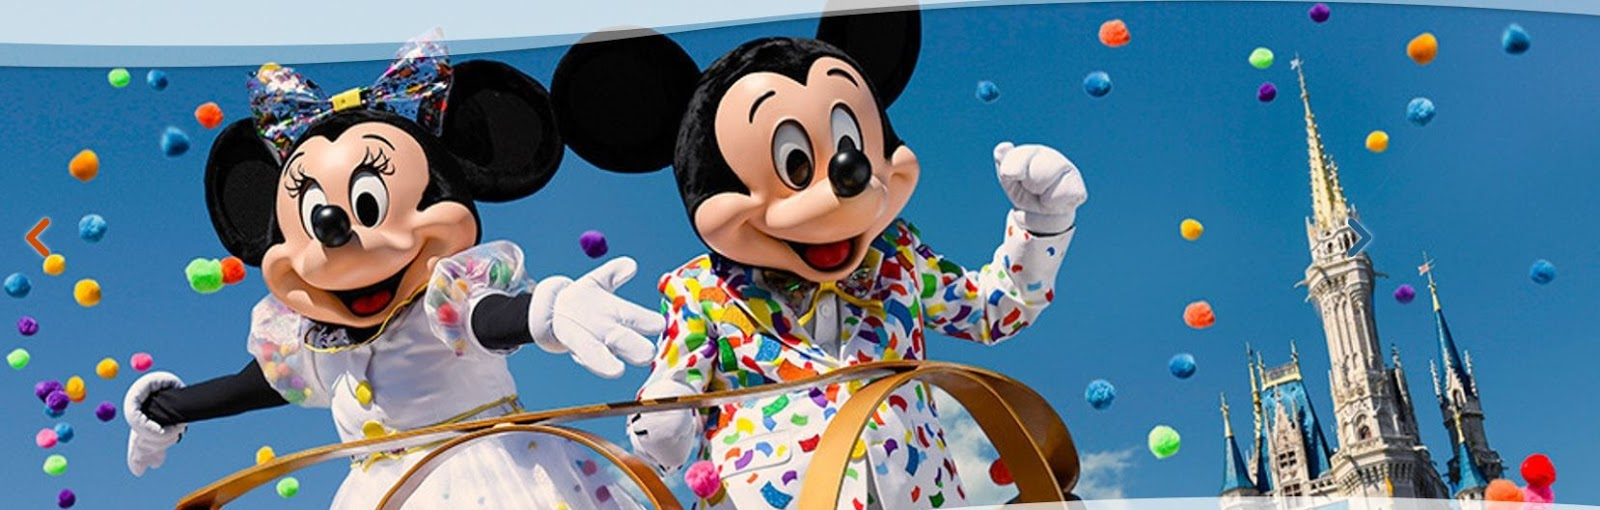 Disney Contests and Sweepstakes: Win the Orlando Family Vacation of